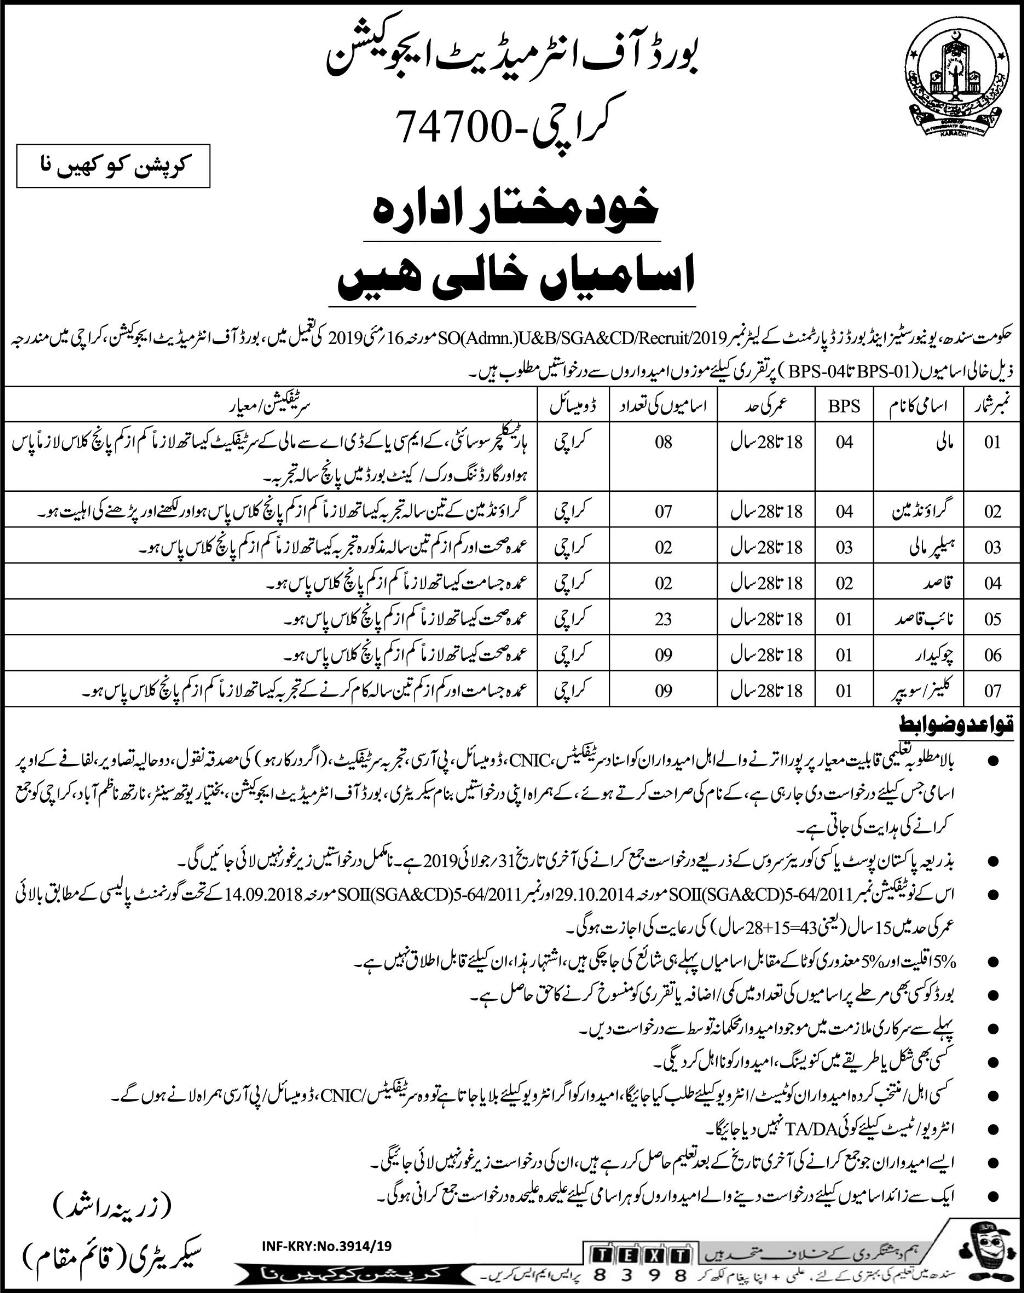 Board Of Intermediate & Secondary Education BISE Karachi Jobs 2019